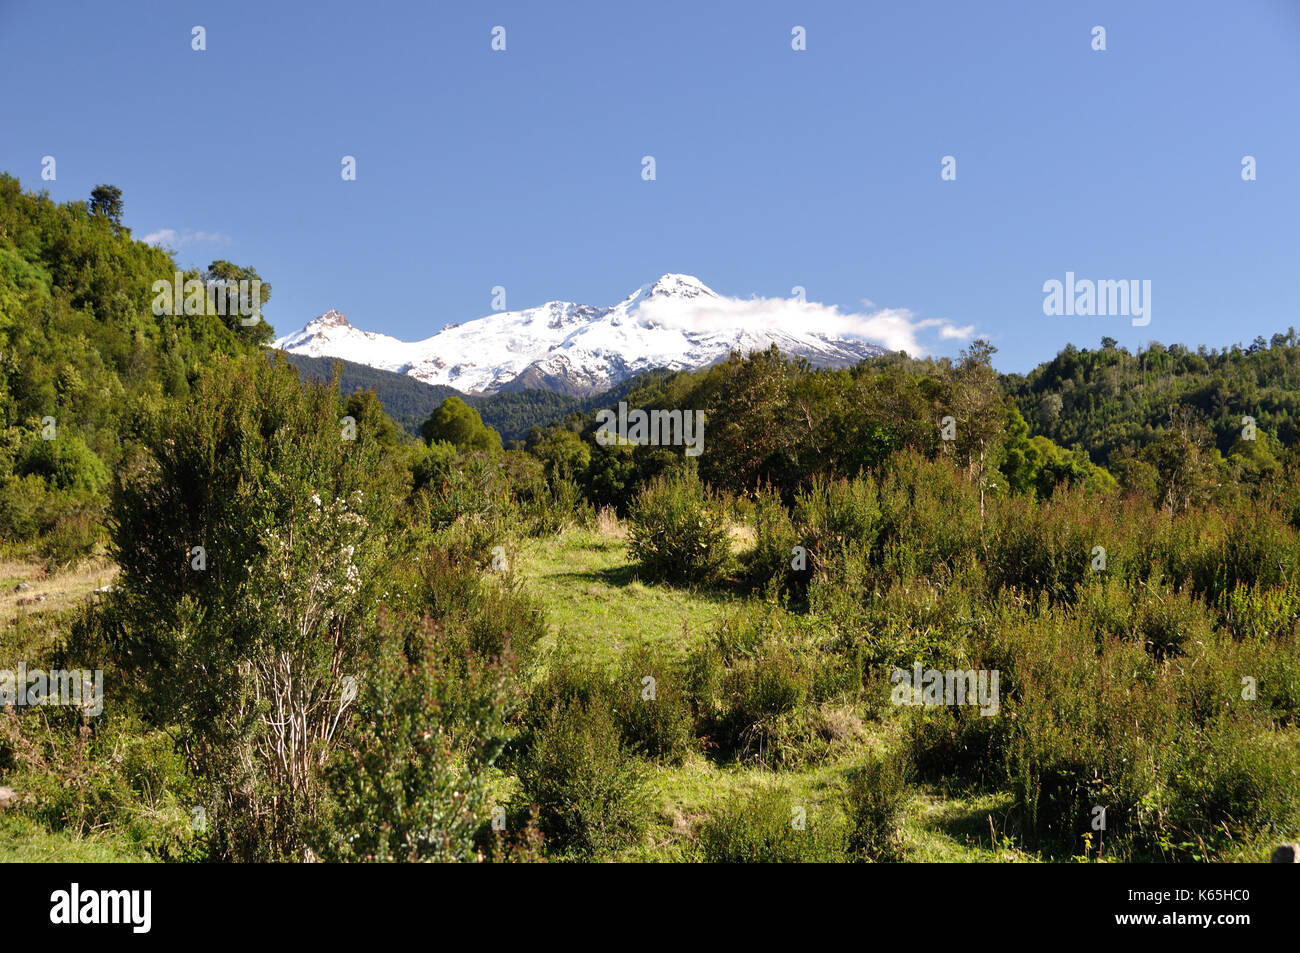 Yate volcano in Chile, Patagonia, seen on a road trip on Carretera Austral - Stock Image